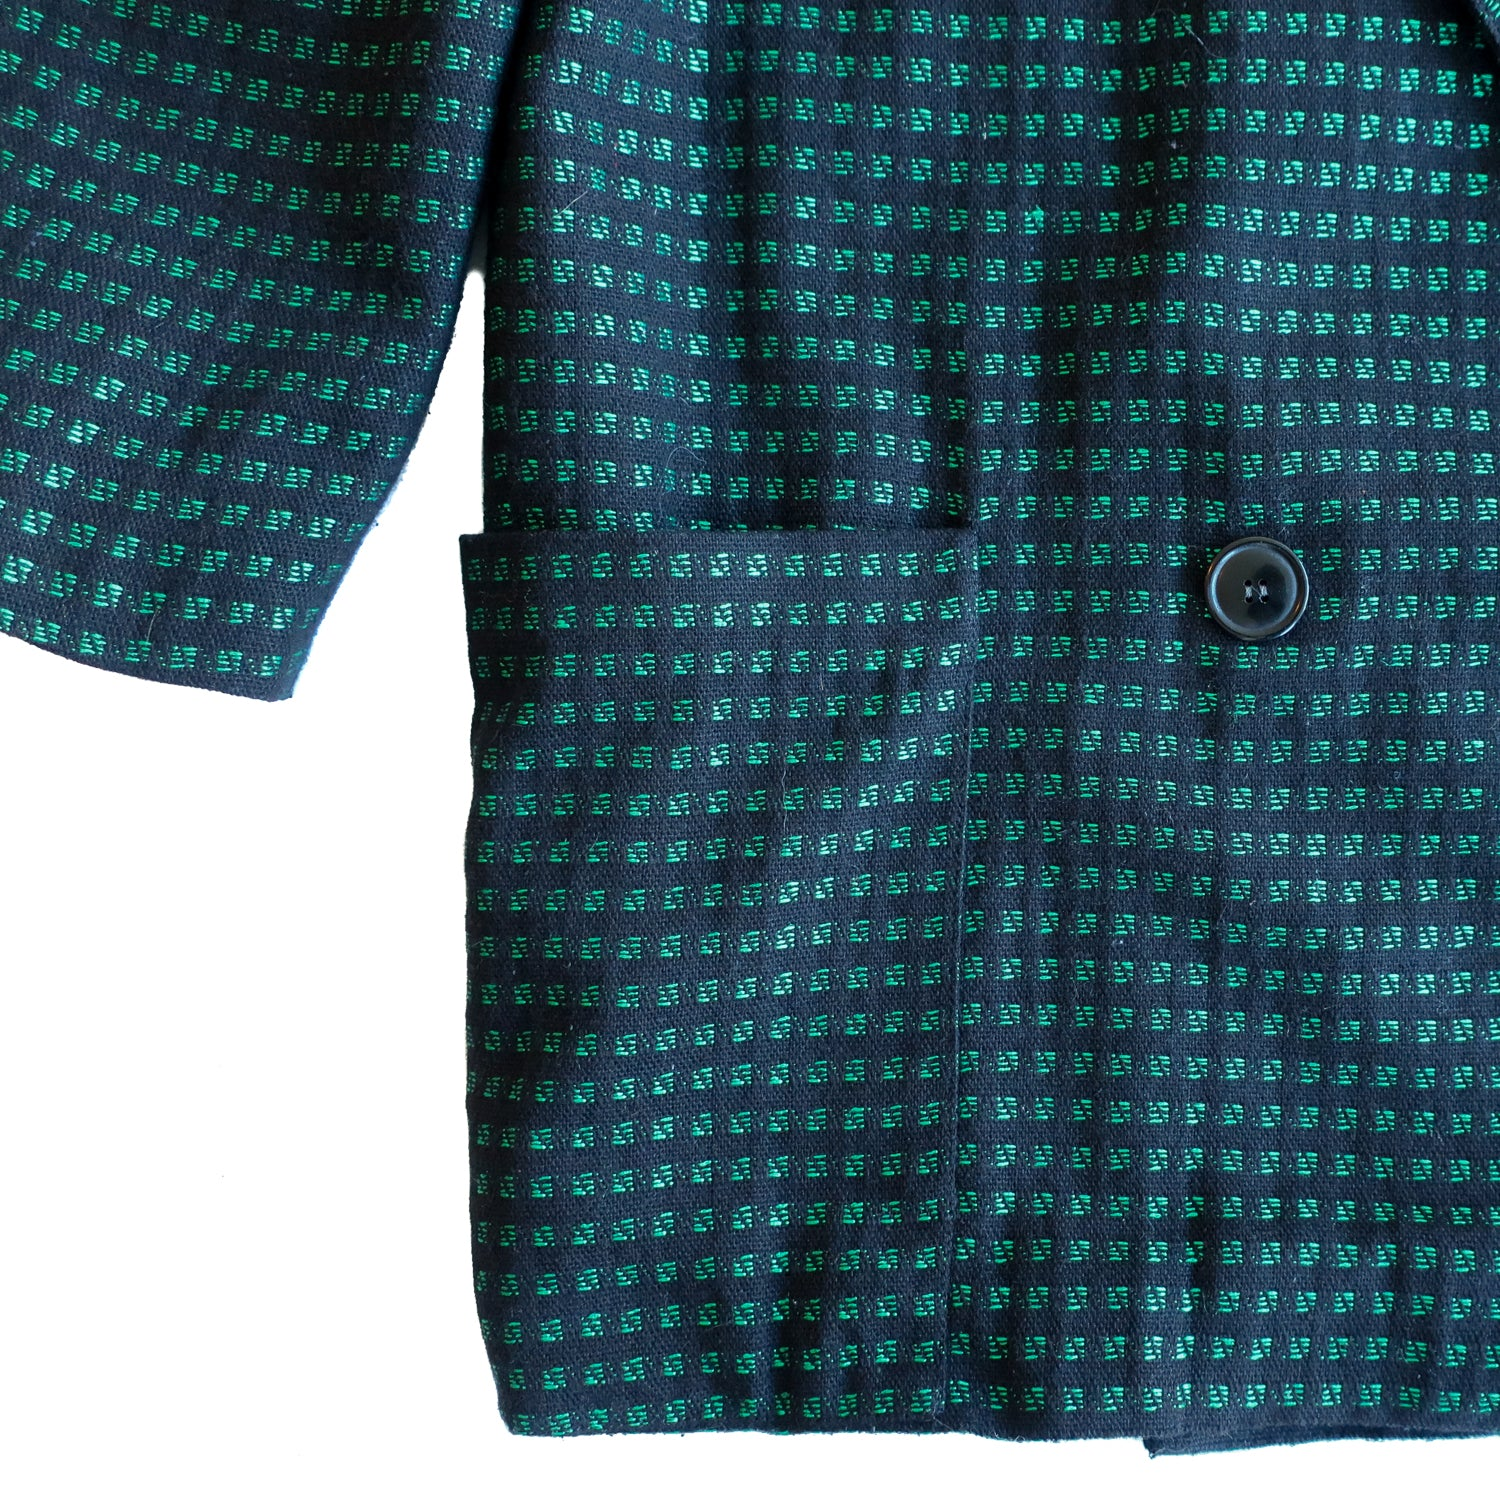 Second Room Vintage Clothing. Vintage double breasted black blazer with bright green square pattern. Fully lined in black, with two front pockets that wrap slightly around the sides to the back. Subtle sewn in shoulder pads and black buttons. Free North American shipping on all orders.